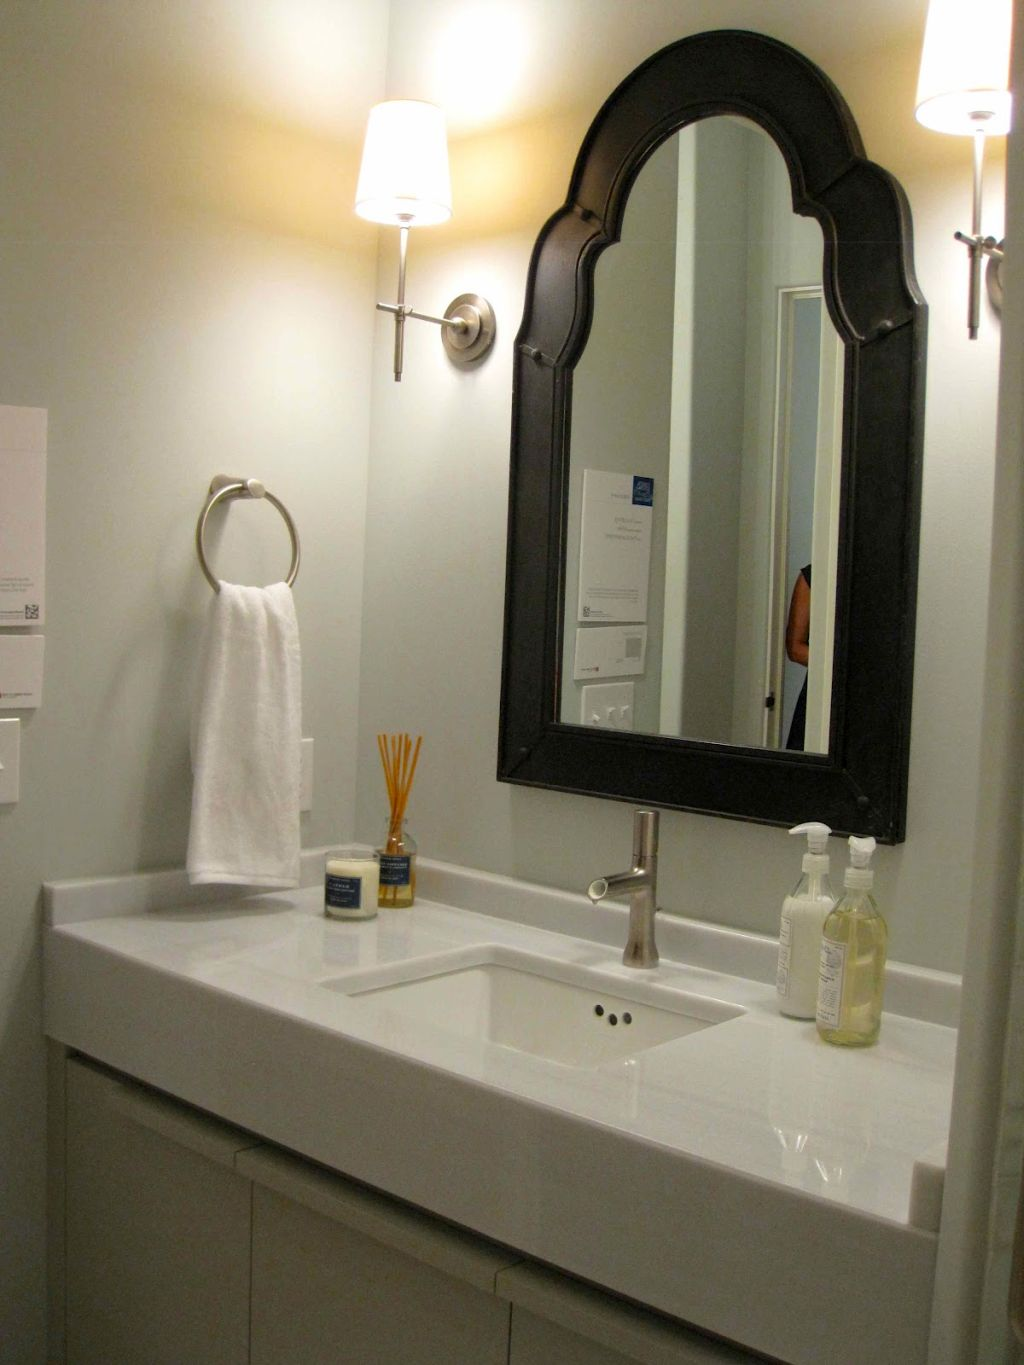 Single Vanity Light Ideas : simple Bathroom vanity lighting ideas for single sink